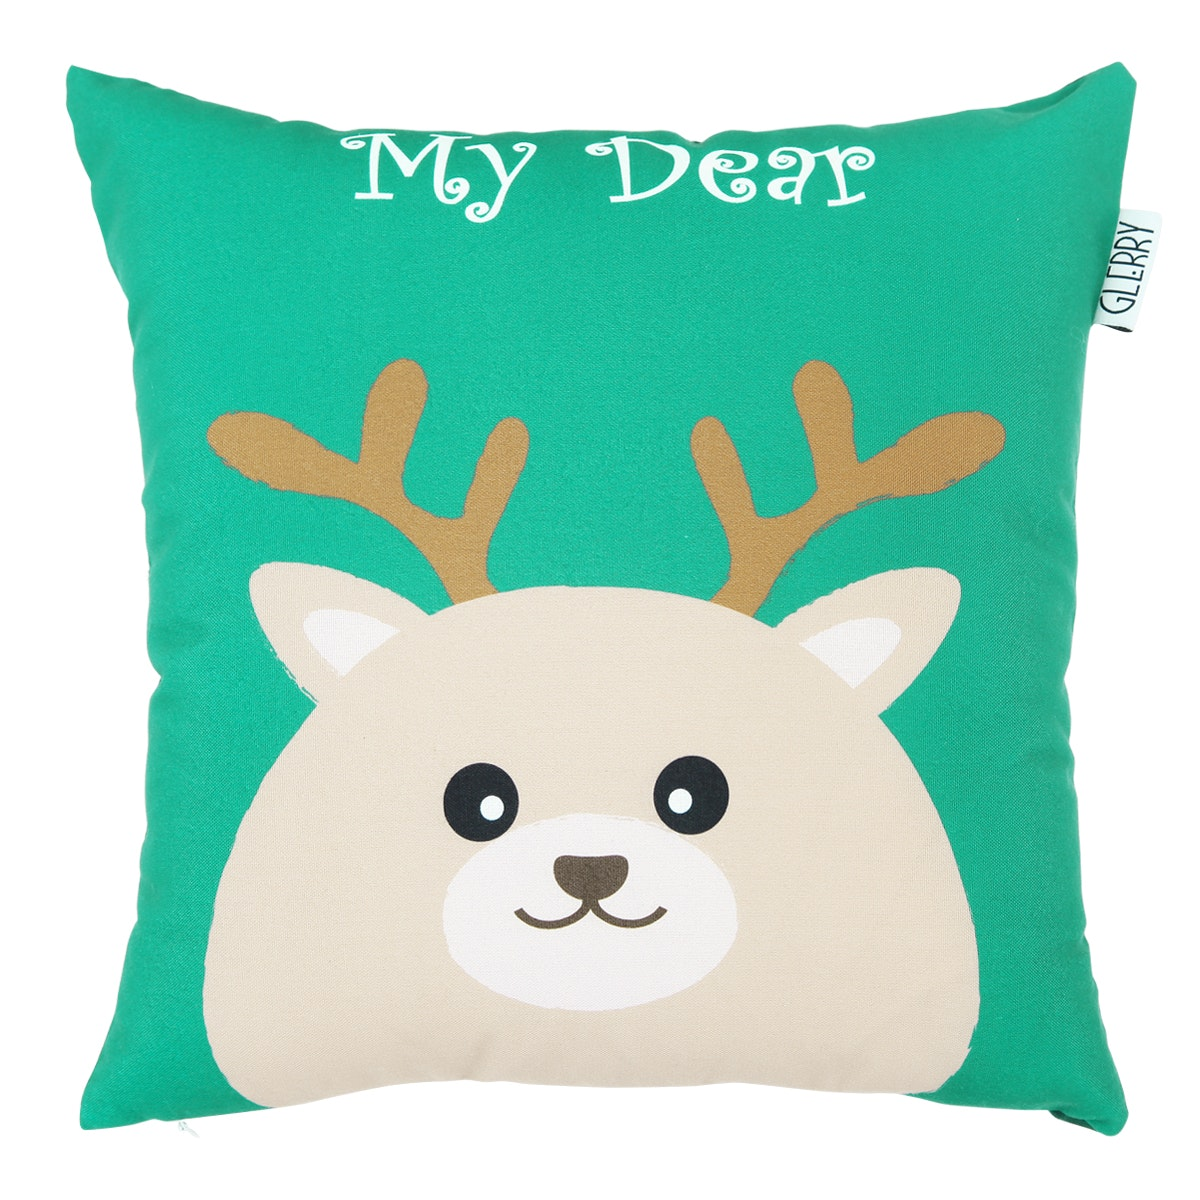 Glerry Home Decor My Dear Cushion 40x40cm